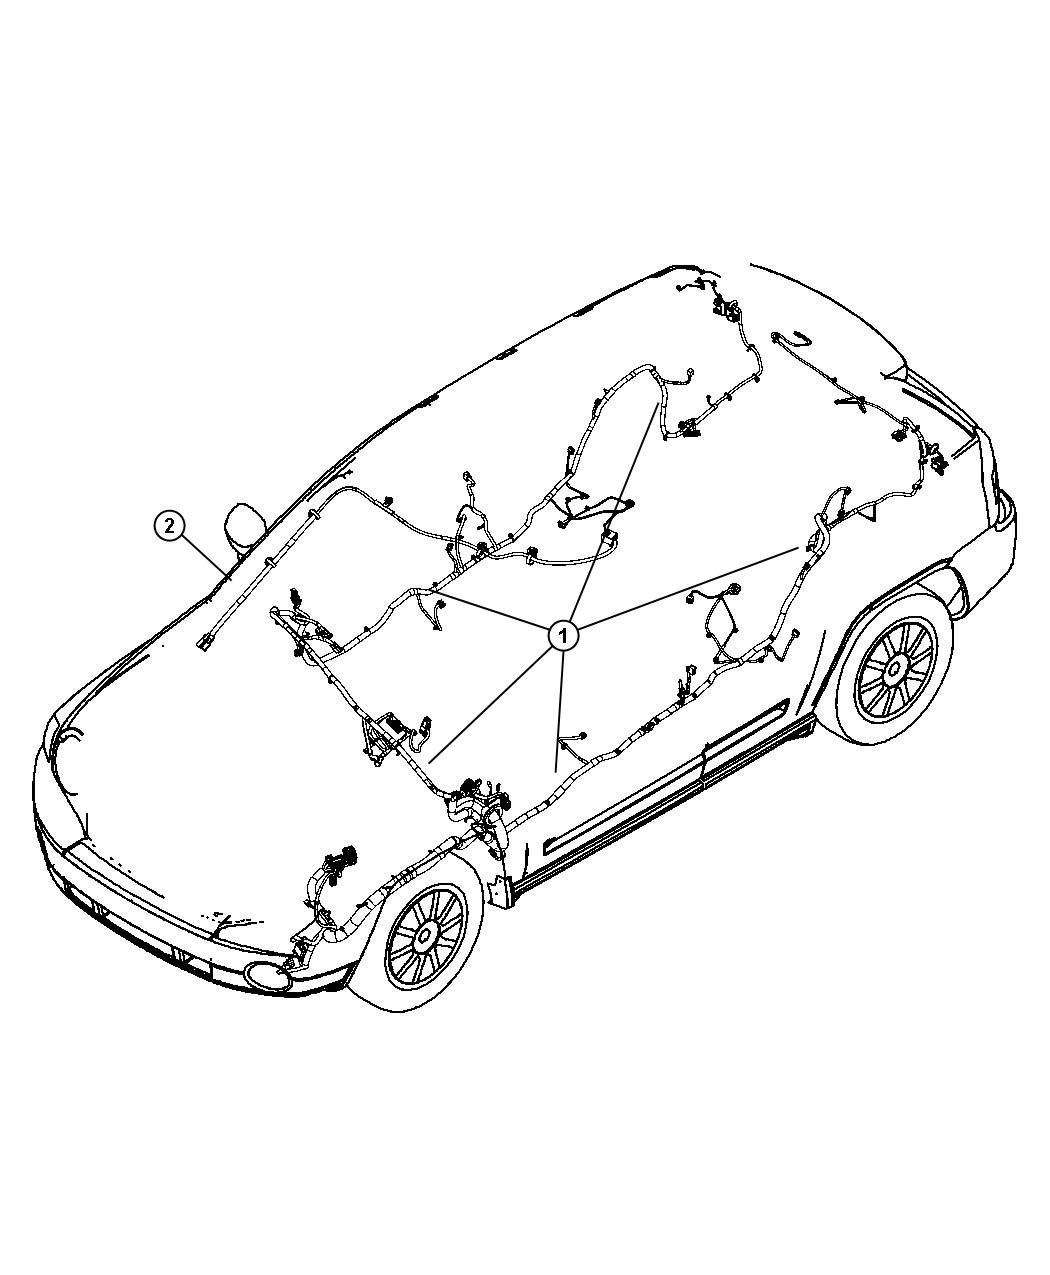 Jeep Compass Wiring Unified Body Restraint System